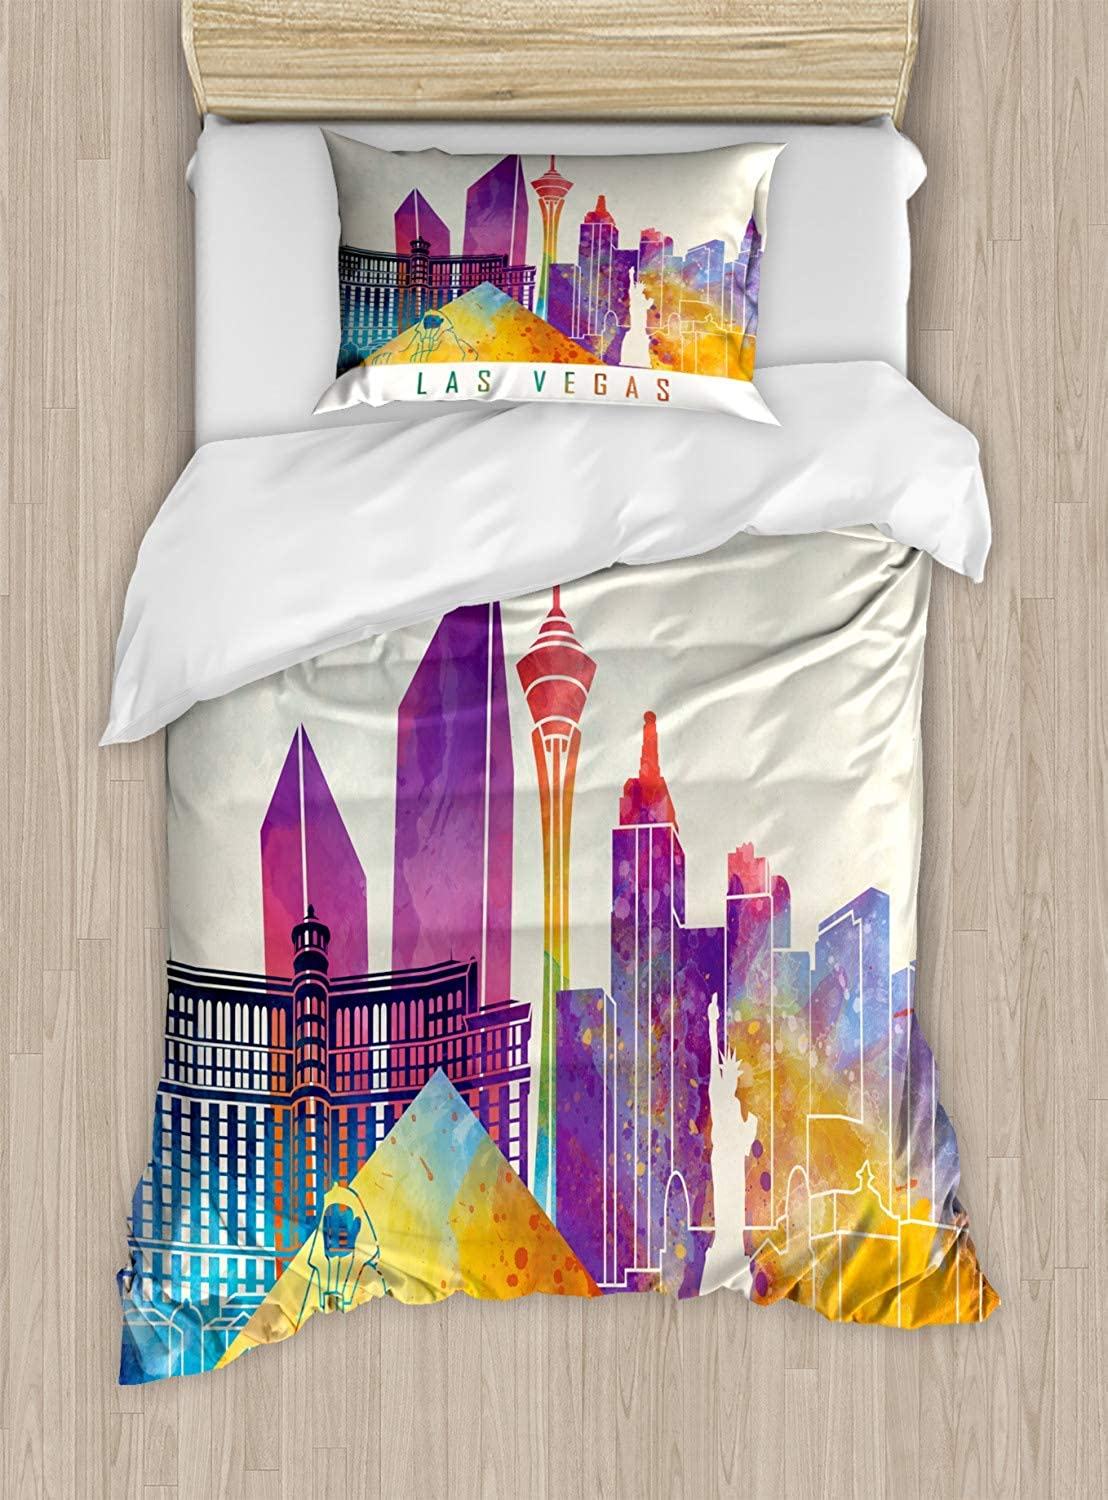 VpinkLV-HOME Las Vegas Duvet Cover Set Twin Size colorful Landmarks in Las Vegas Pyramid and Statue of Liberty in Watercolors,with 1 Pillowcase for Kids Bedding,Multicolor